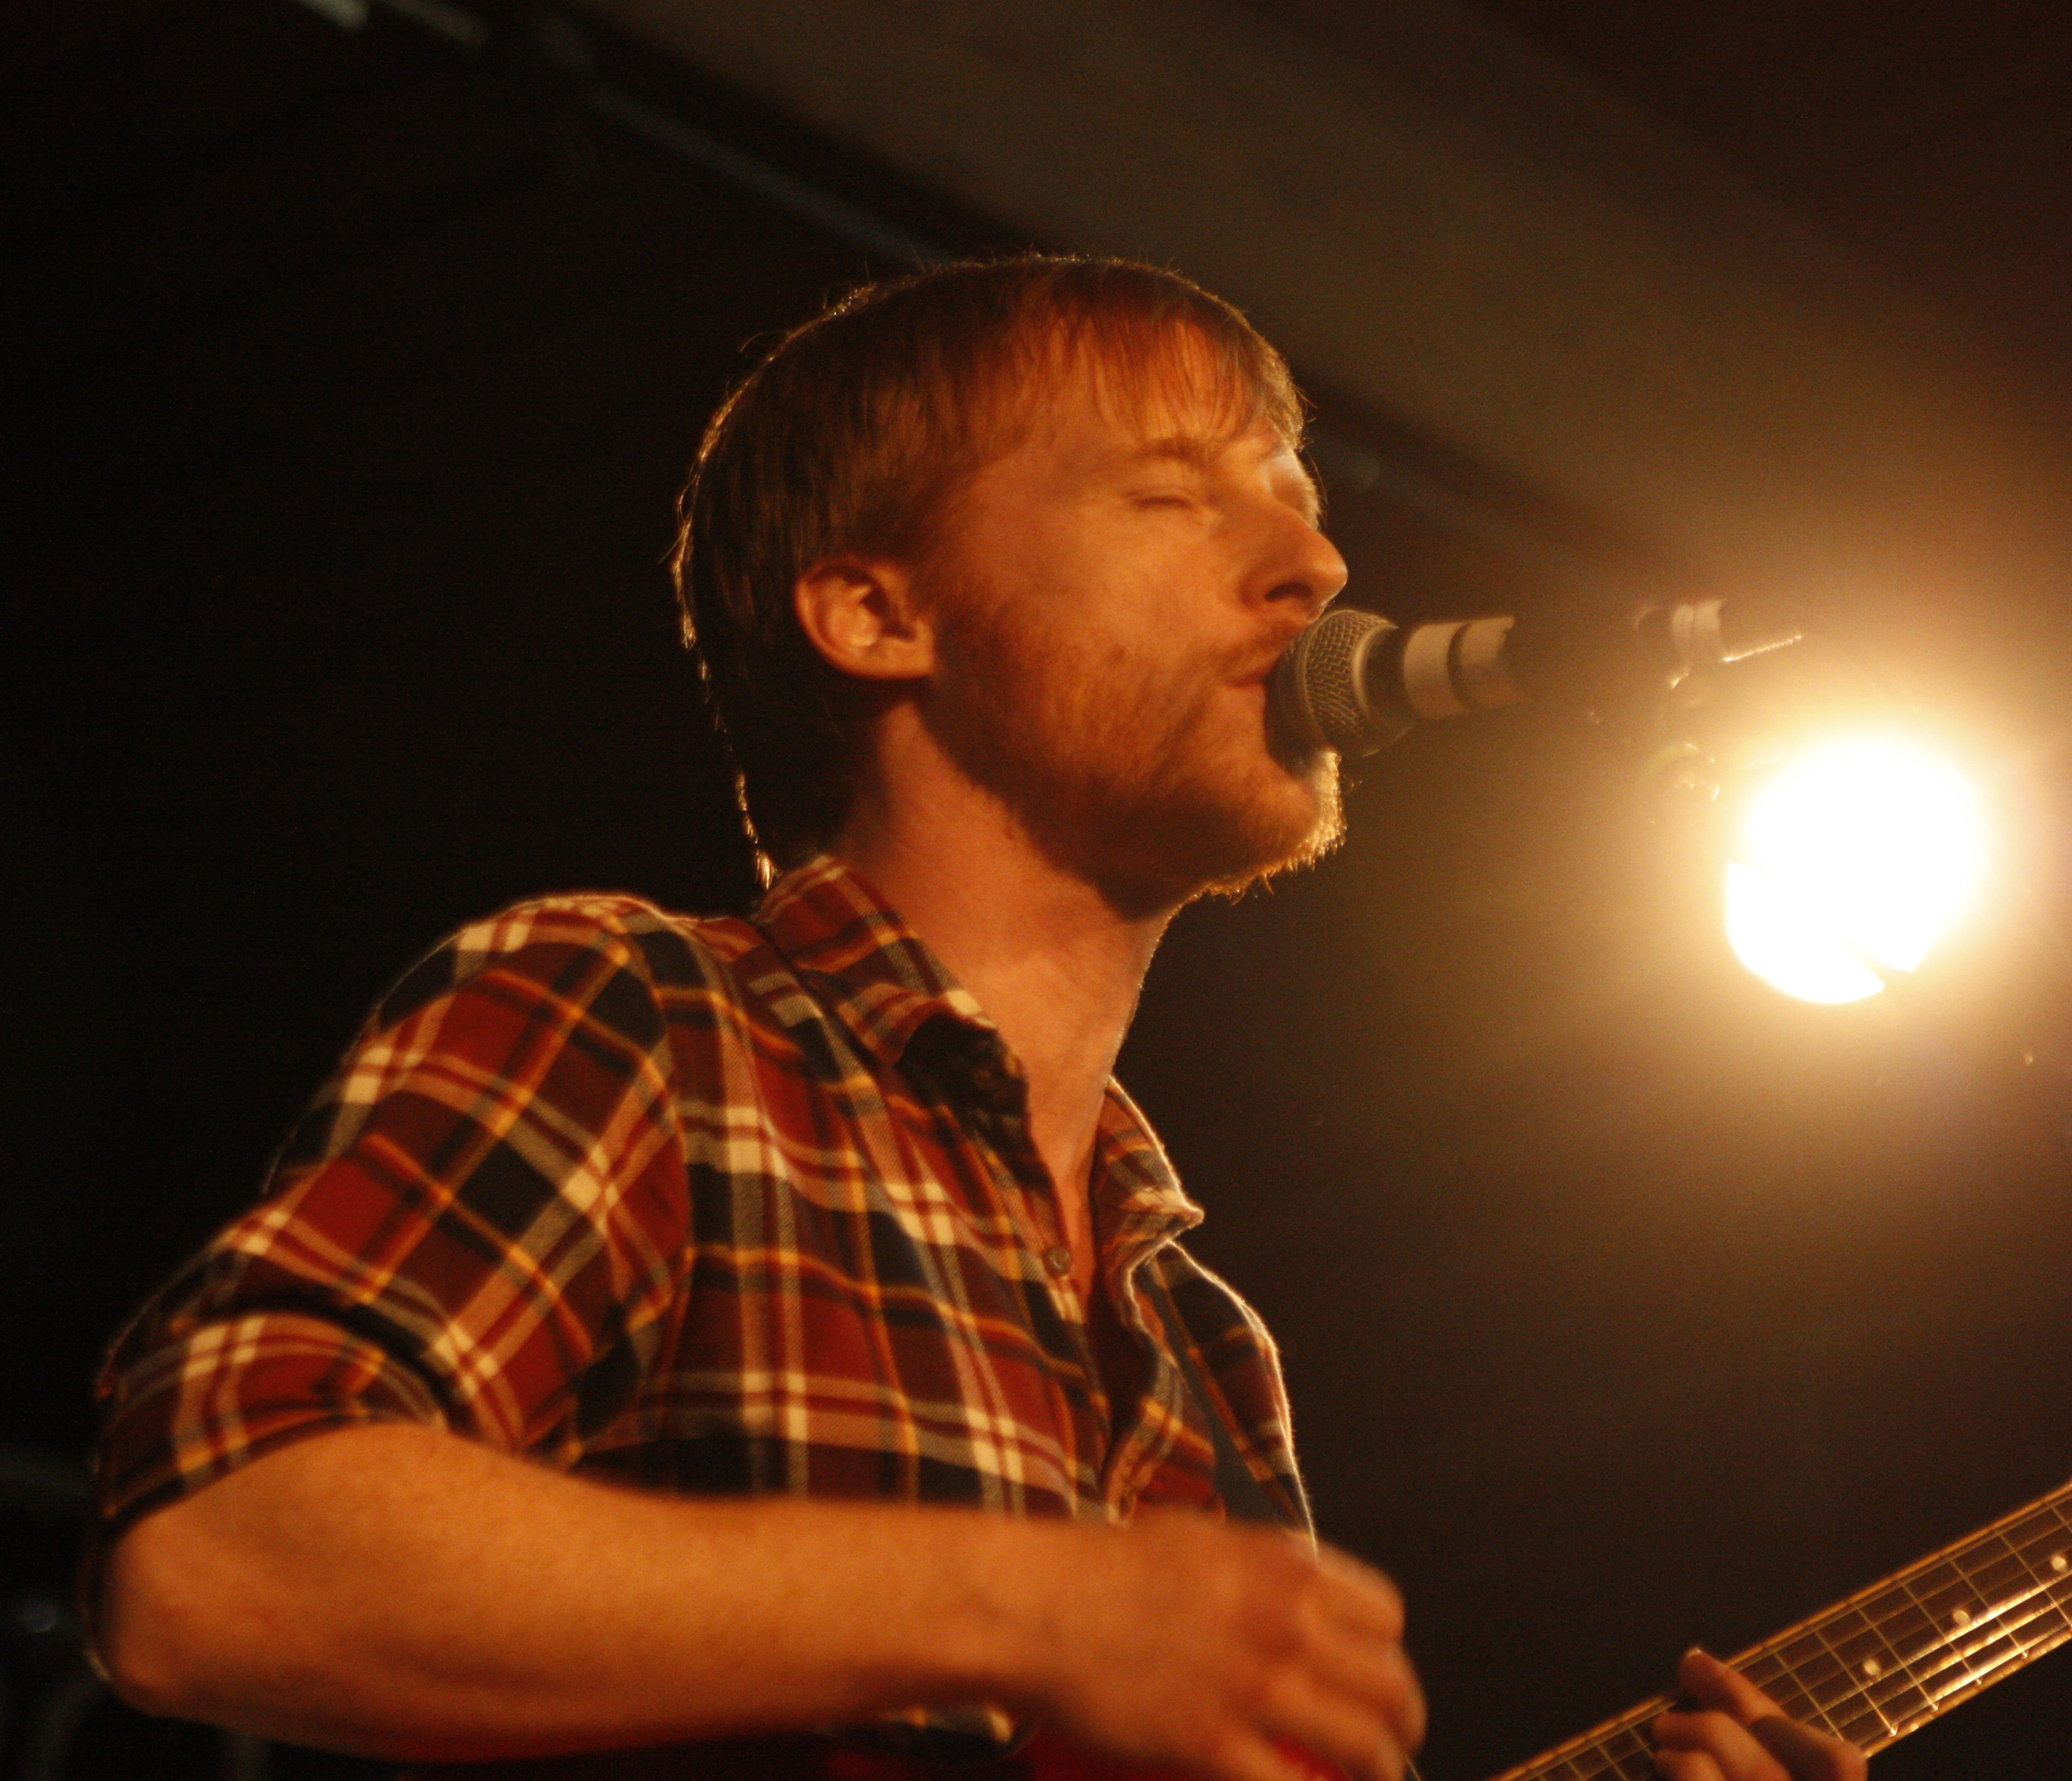 Hanging outside The Masquerade with Kevin Devine